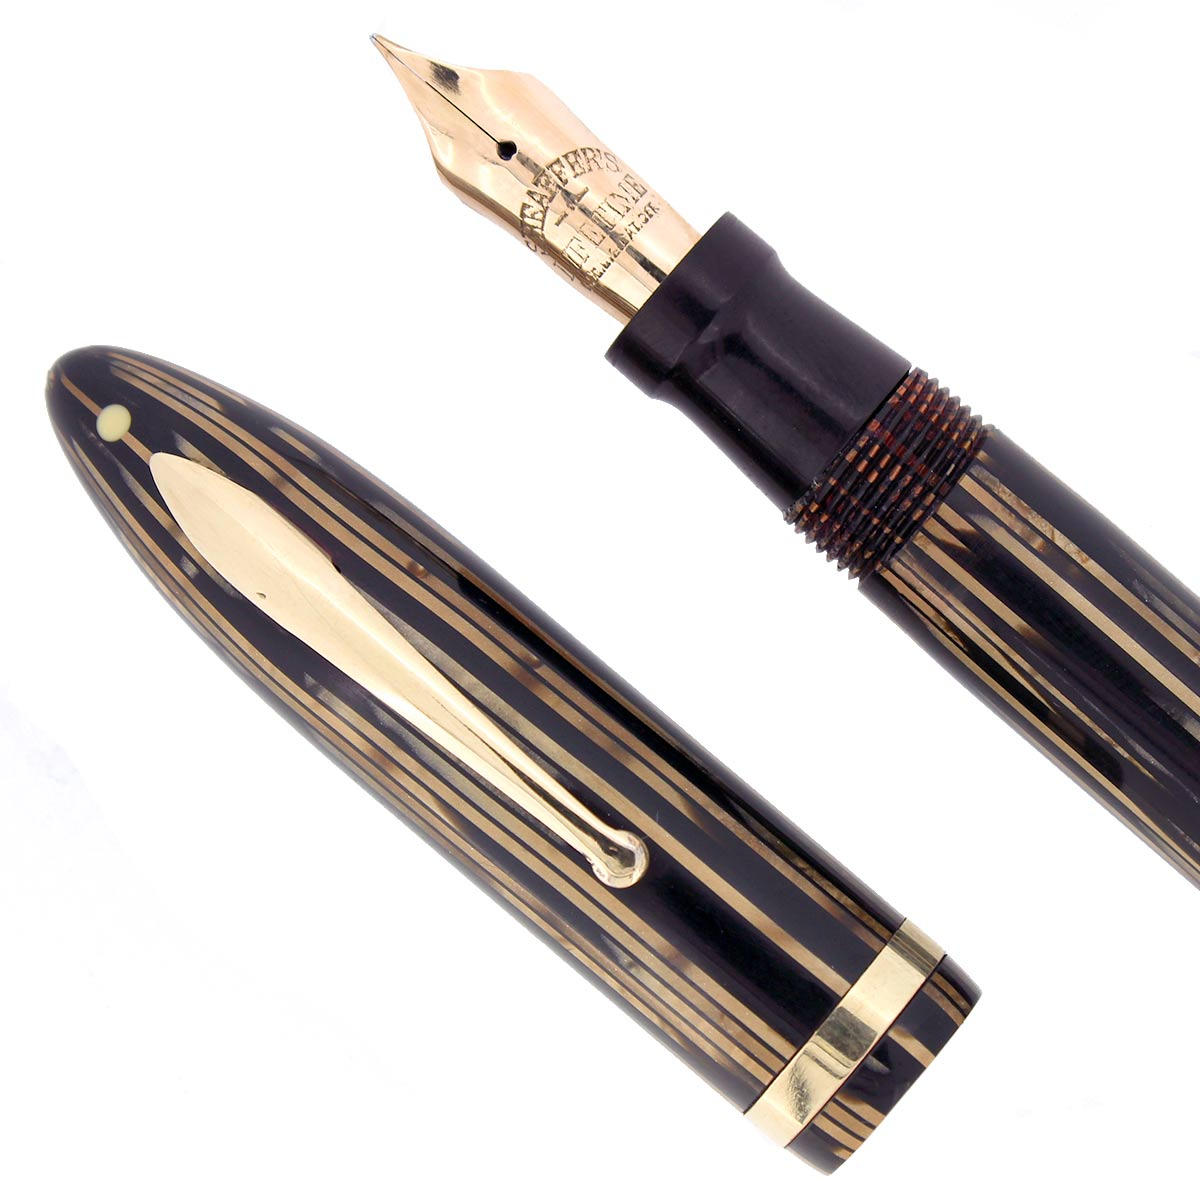 CIRCA 1938 SHEAFFER OVERSIZE GOLDEN BROWN BALANCE FOUNTAIN PEN RESTORED OFFERED BY ANTIQUE DIGGER